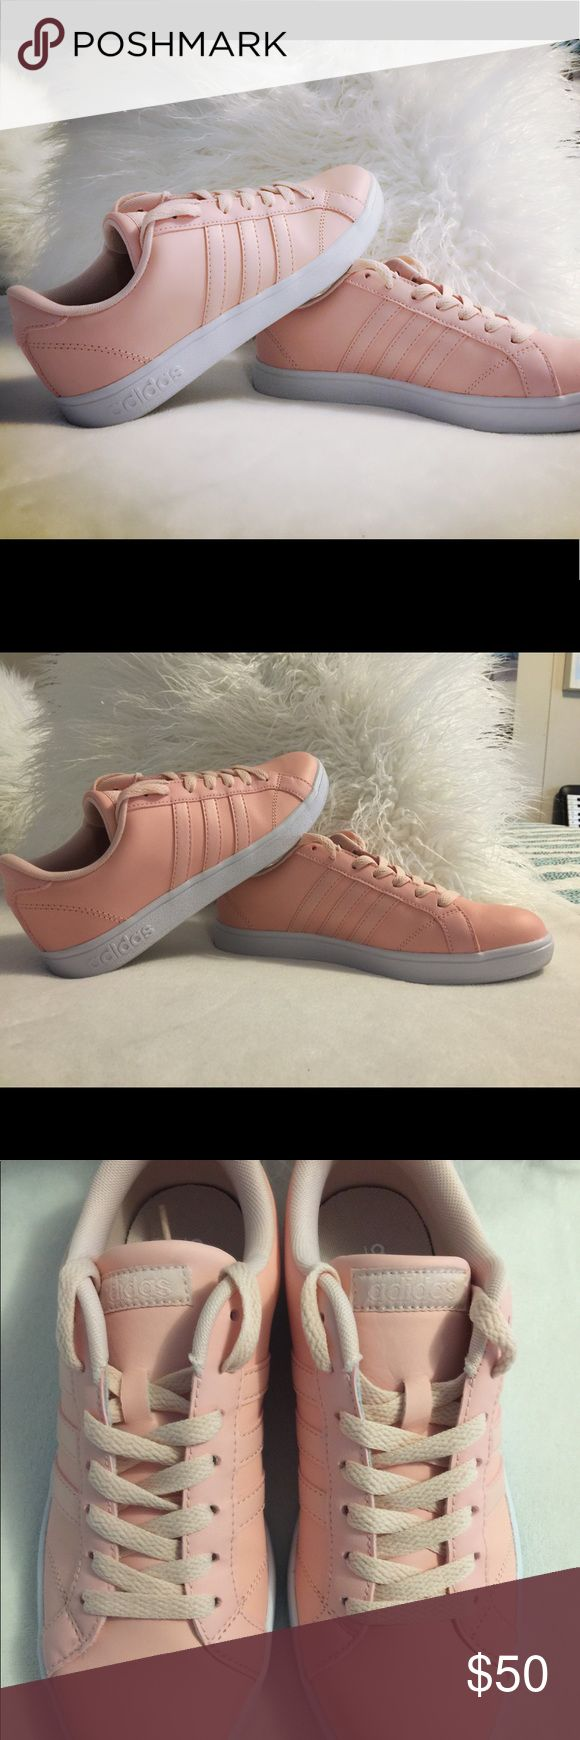 Women's Adidas Baseline Super adorable 👟 worn once for a couple of hrs basically new,I no longer have the box!the size is a women's 6 but the shoes run big I usually wear a 7 and had to sized down,the color is a peachy pink !! adidas Shoes Athletic Shoes